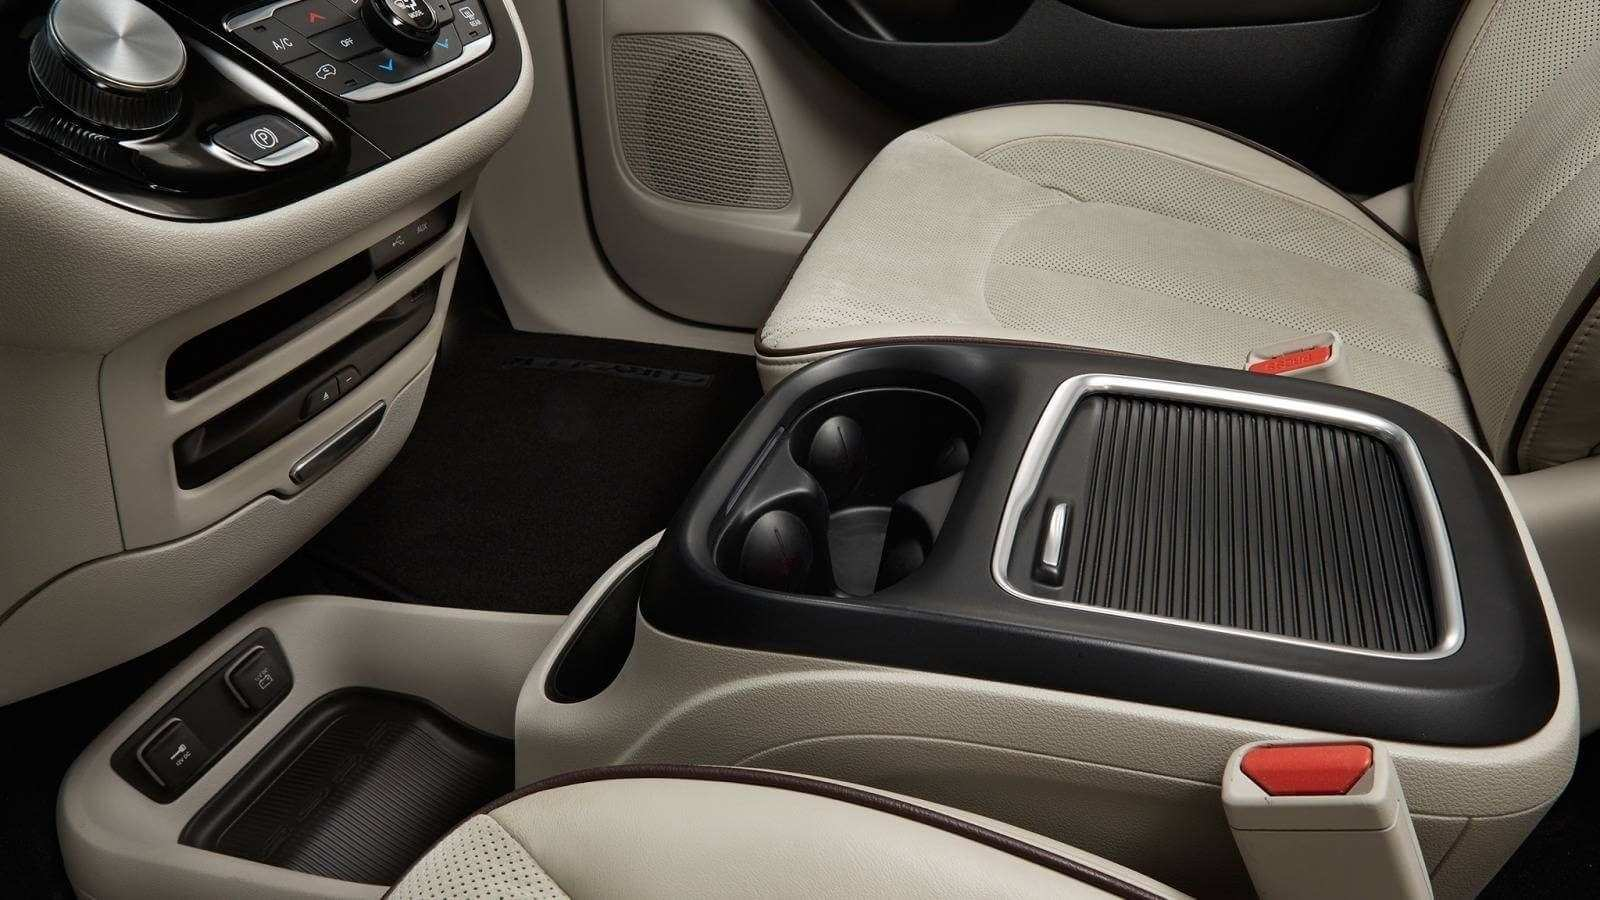 70 The Best 2019 Chrysler Town Interior